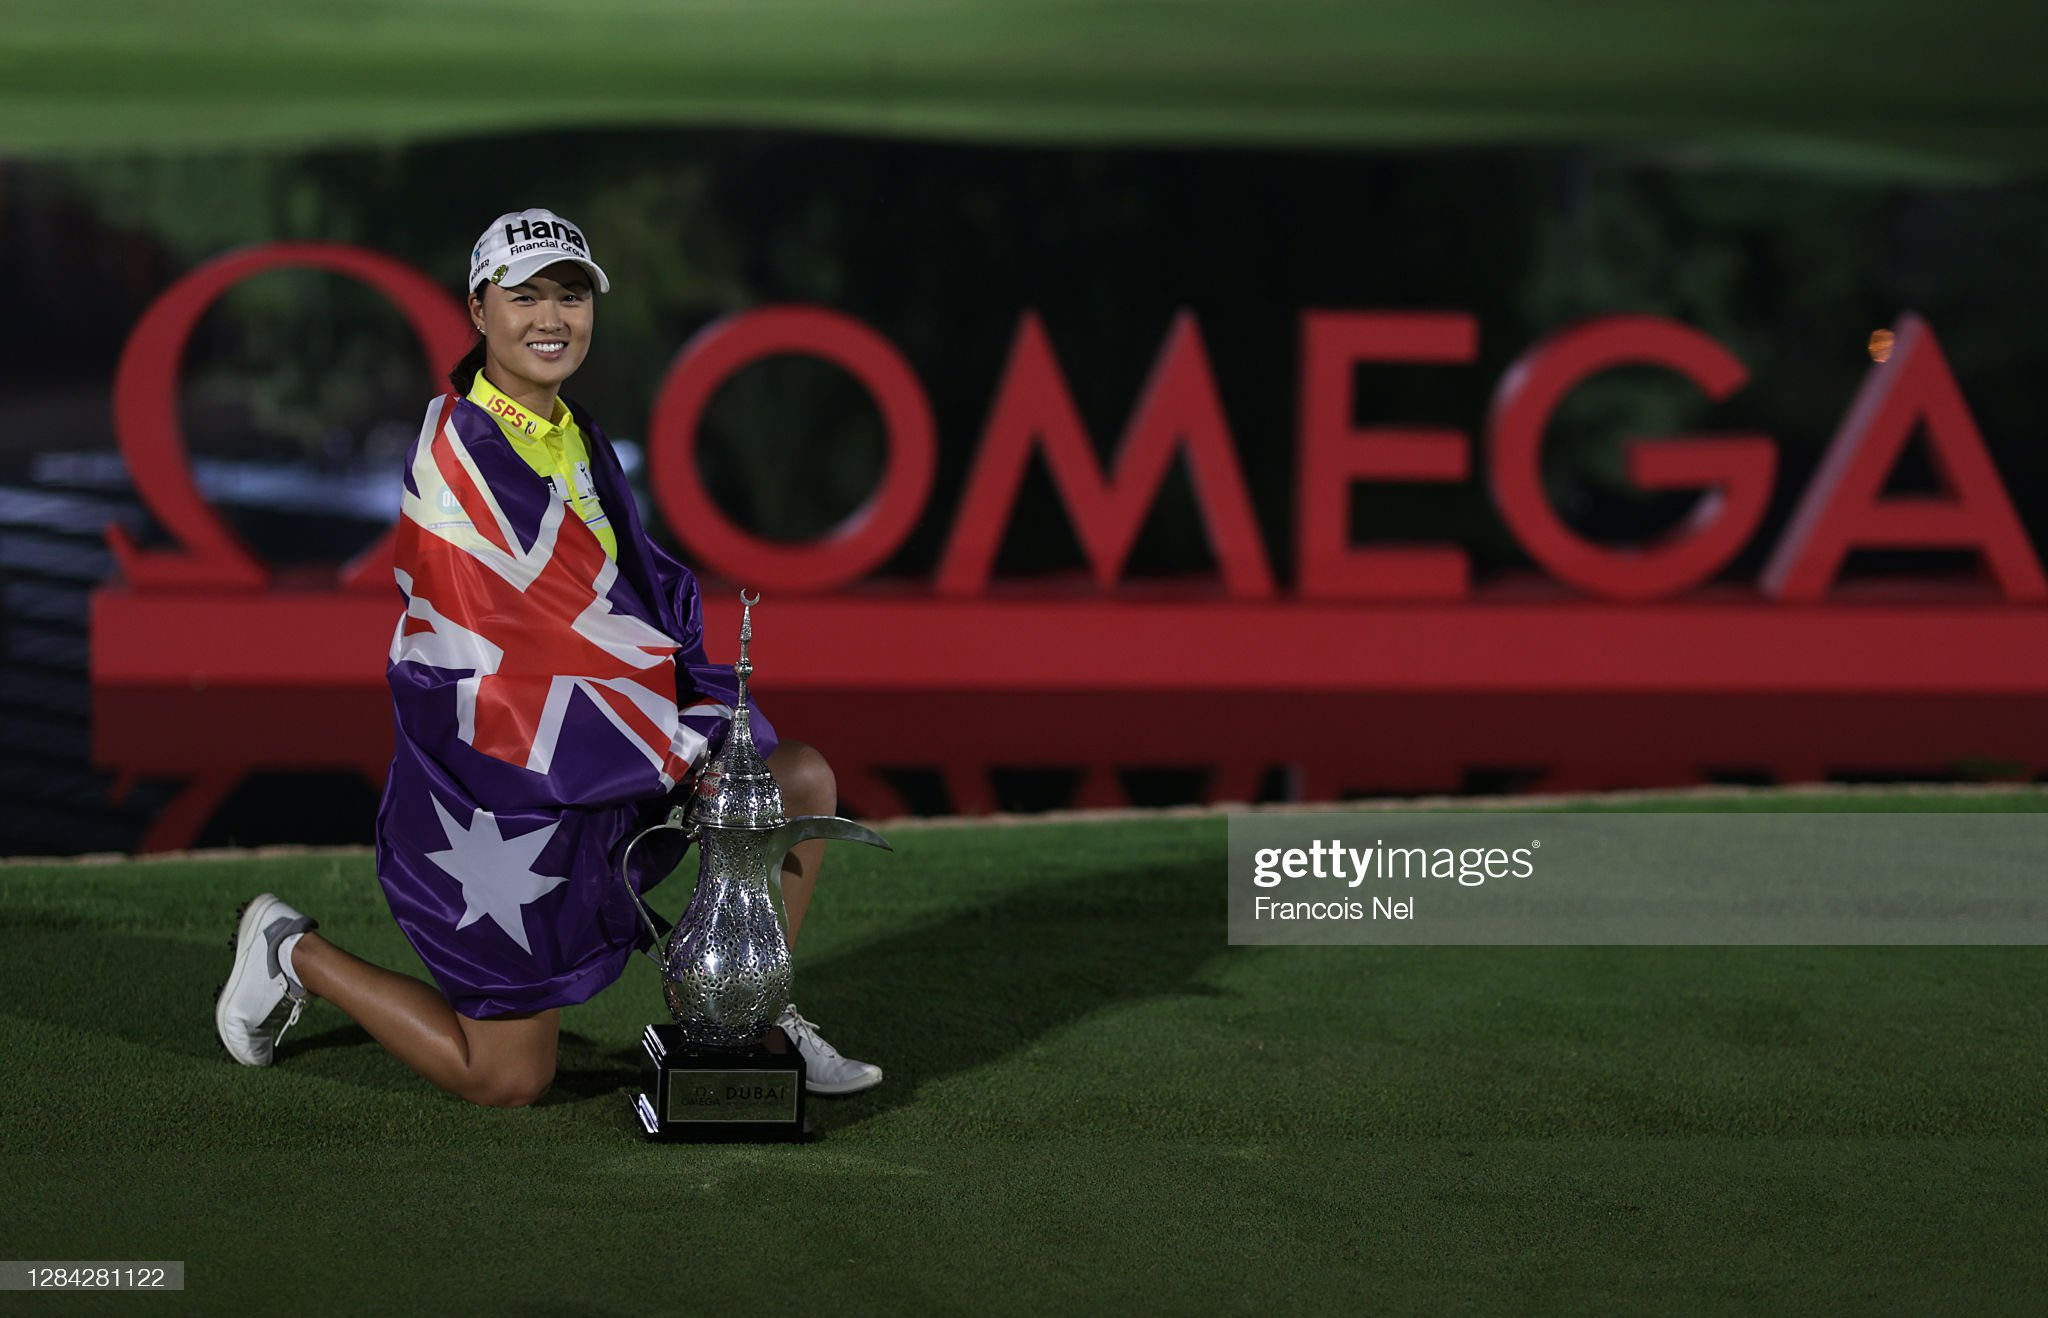 https://media.gettyimages.com/photos/minjee-lee-of-australia-with-the-winners-trophy-after-the-final-round-picture-id1284281122?s=2048x2048